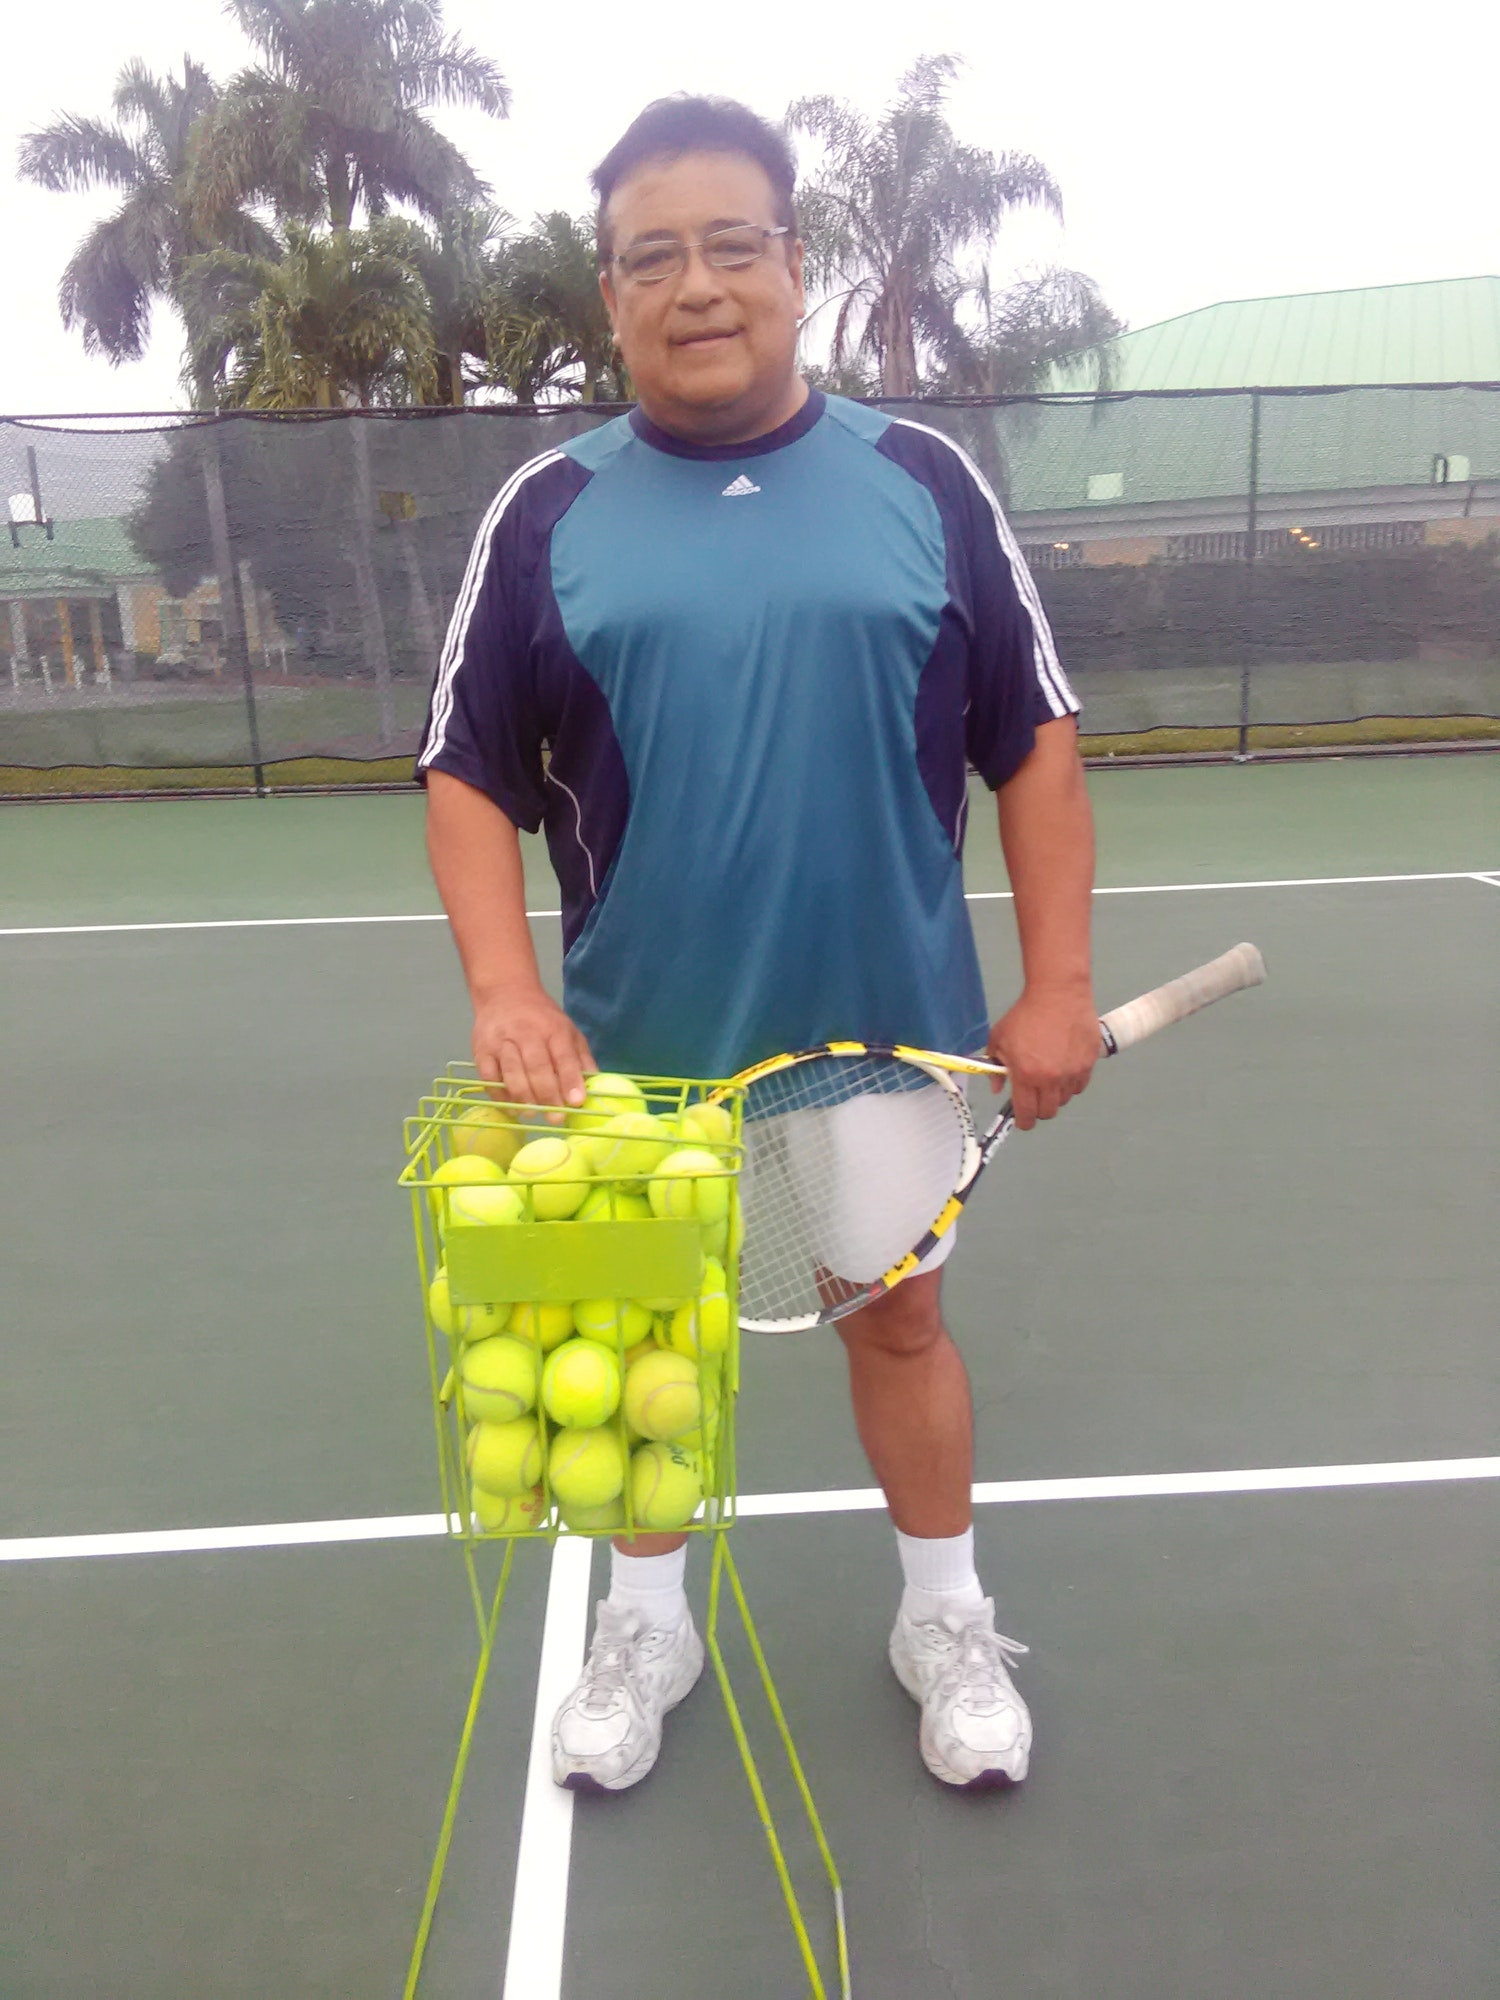 Jose X. teaches tennis lessons in Hialeah, FL